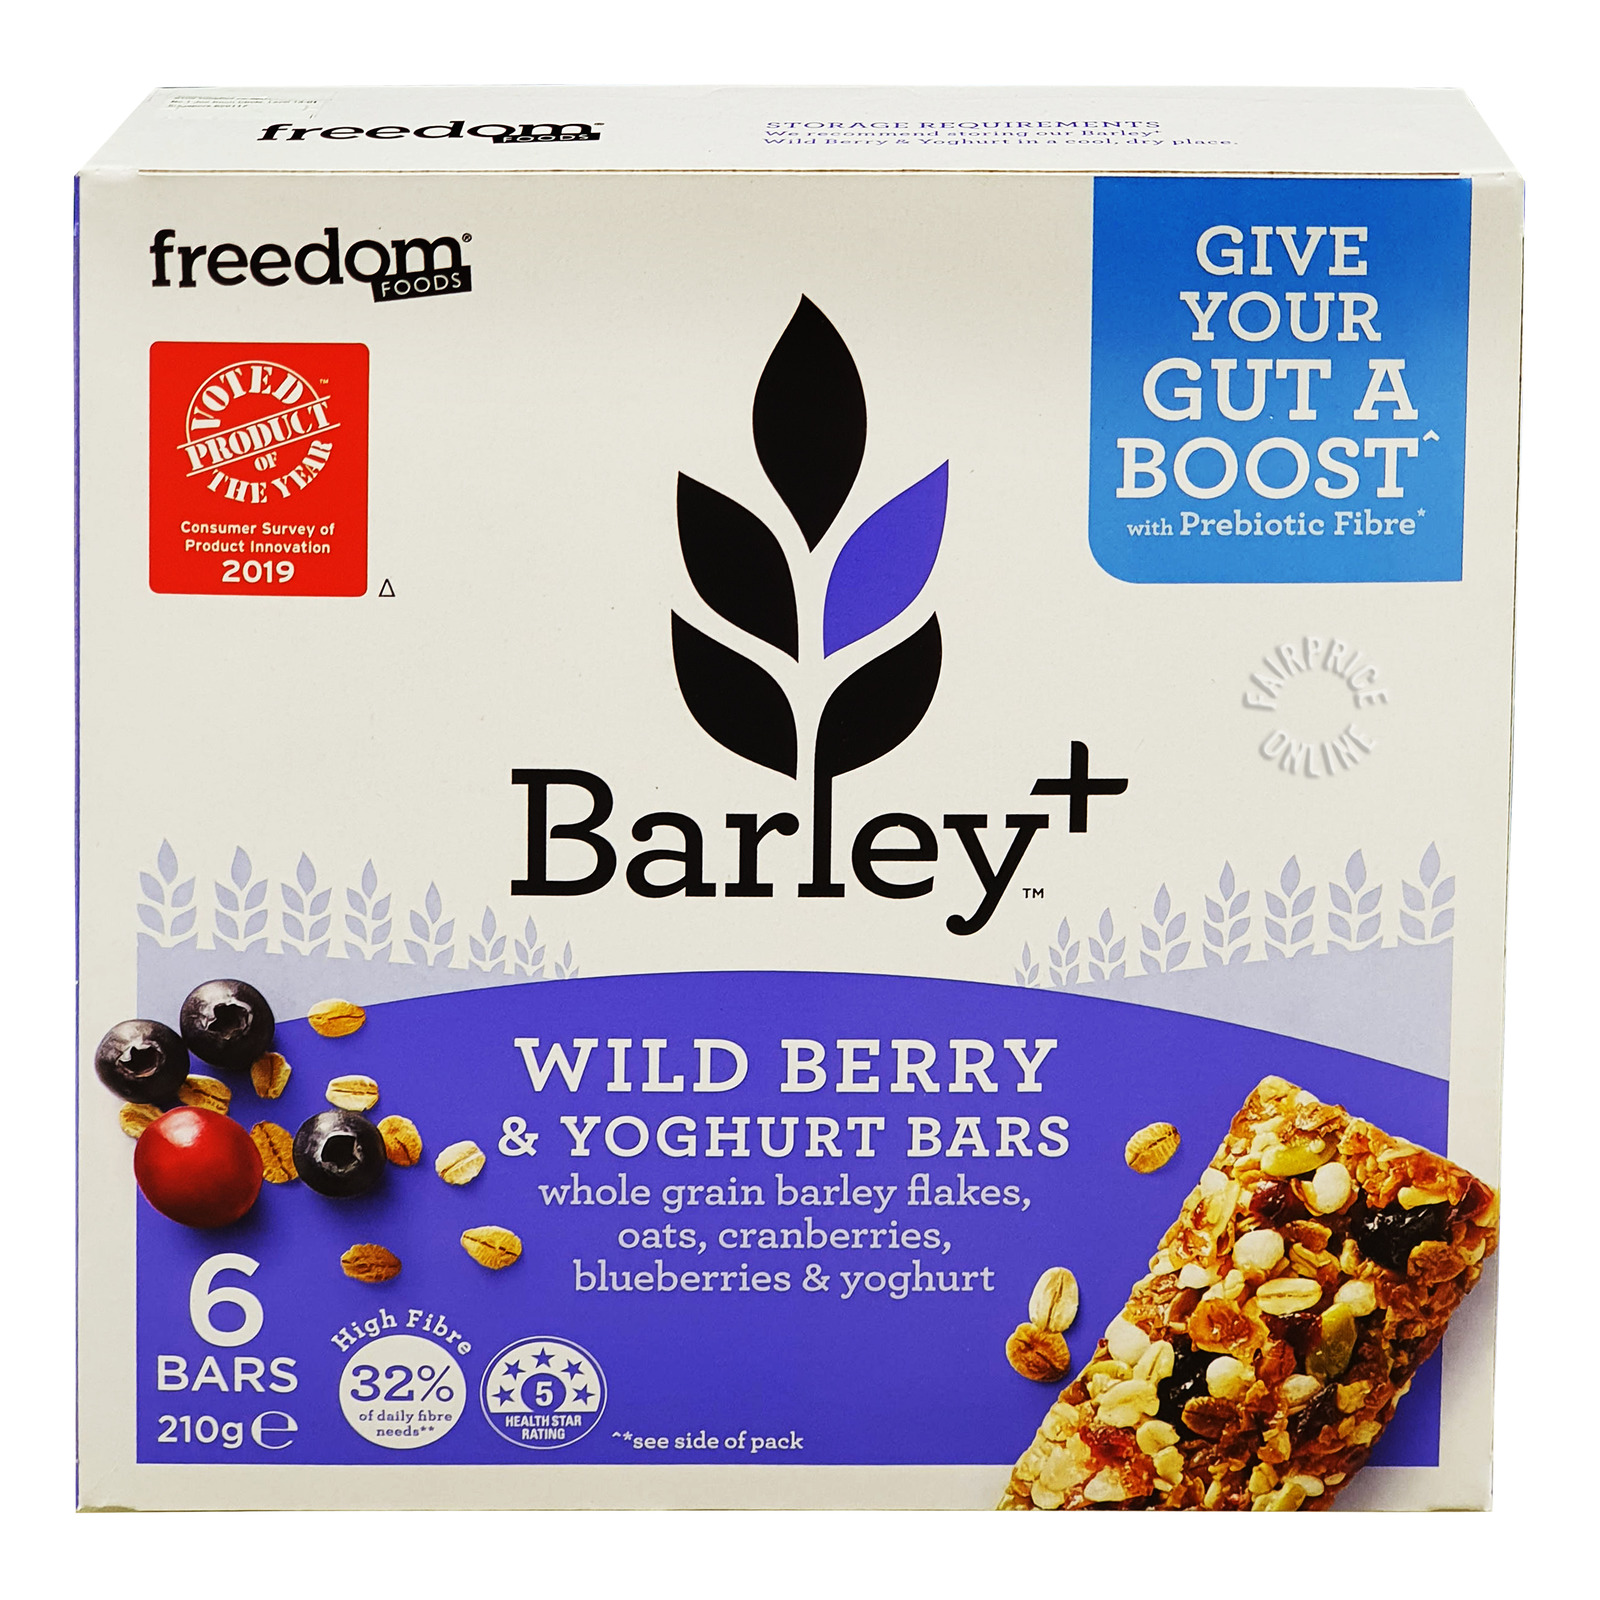 Freedom Foods Barley+ Bars - Wild Berry & Yoghurt